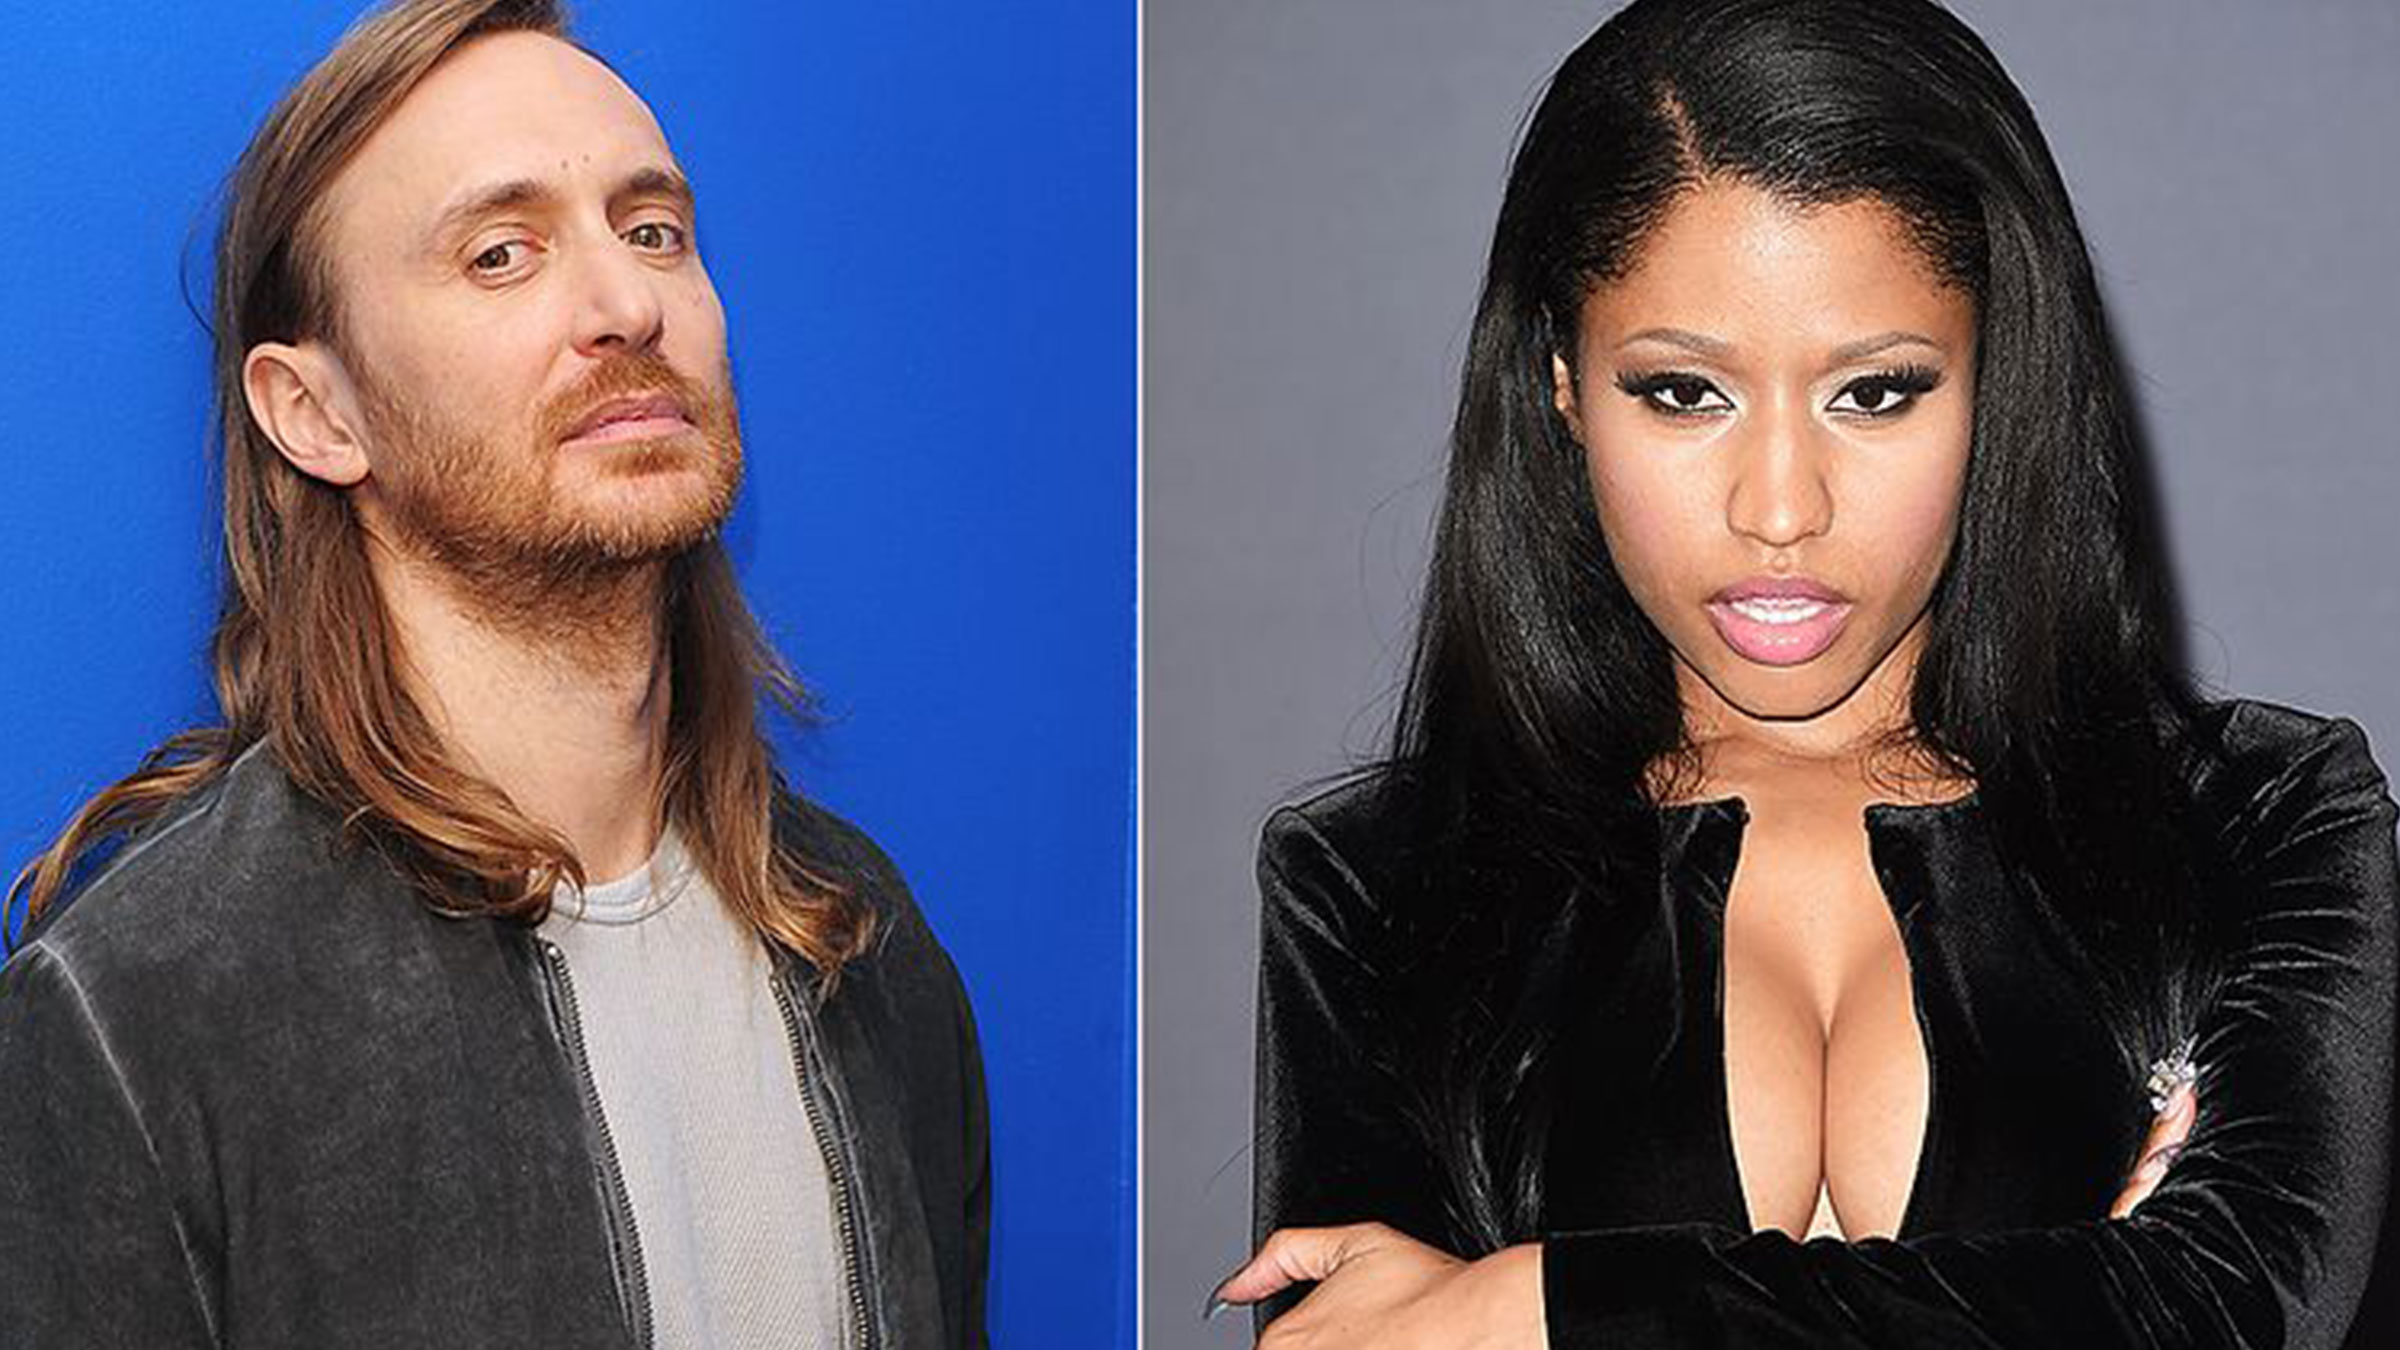 David guetta nicki minaj home deze